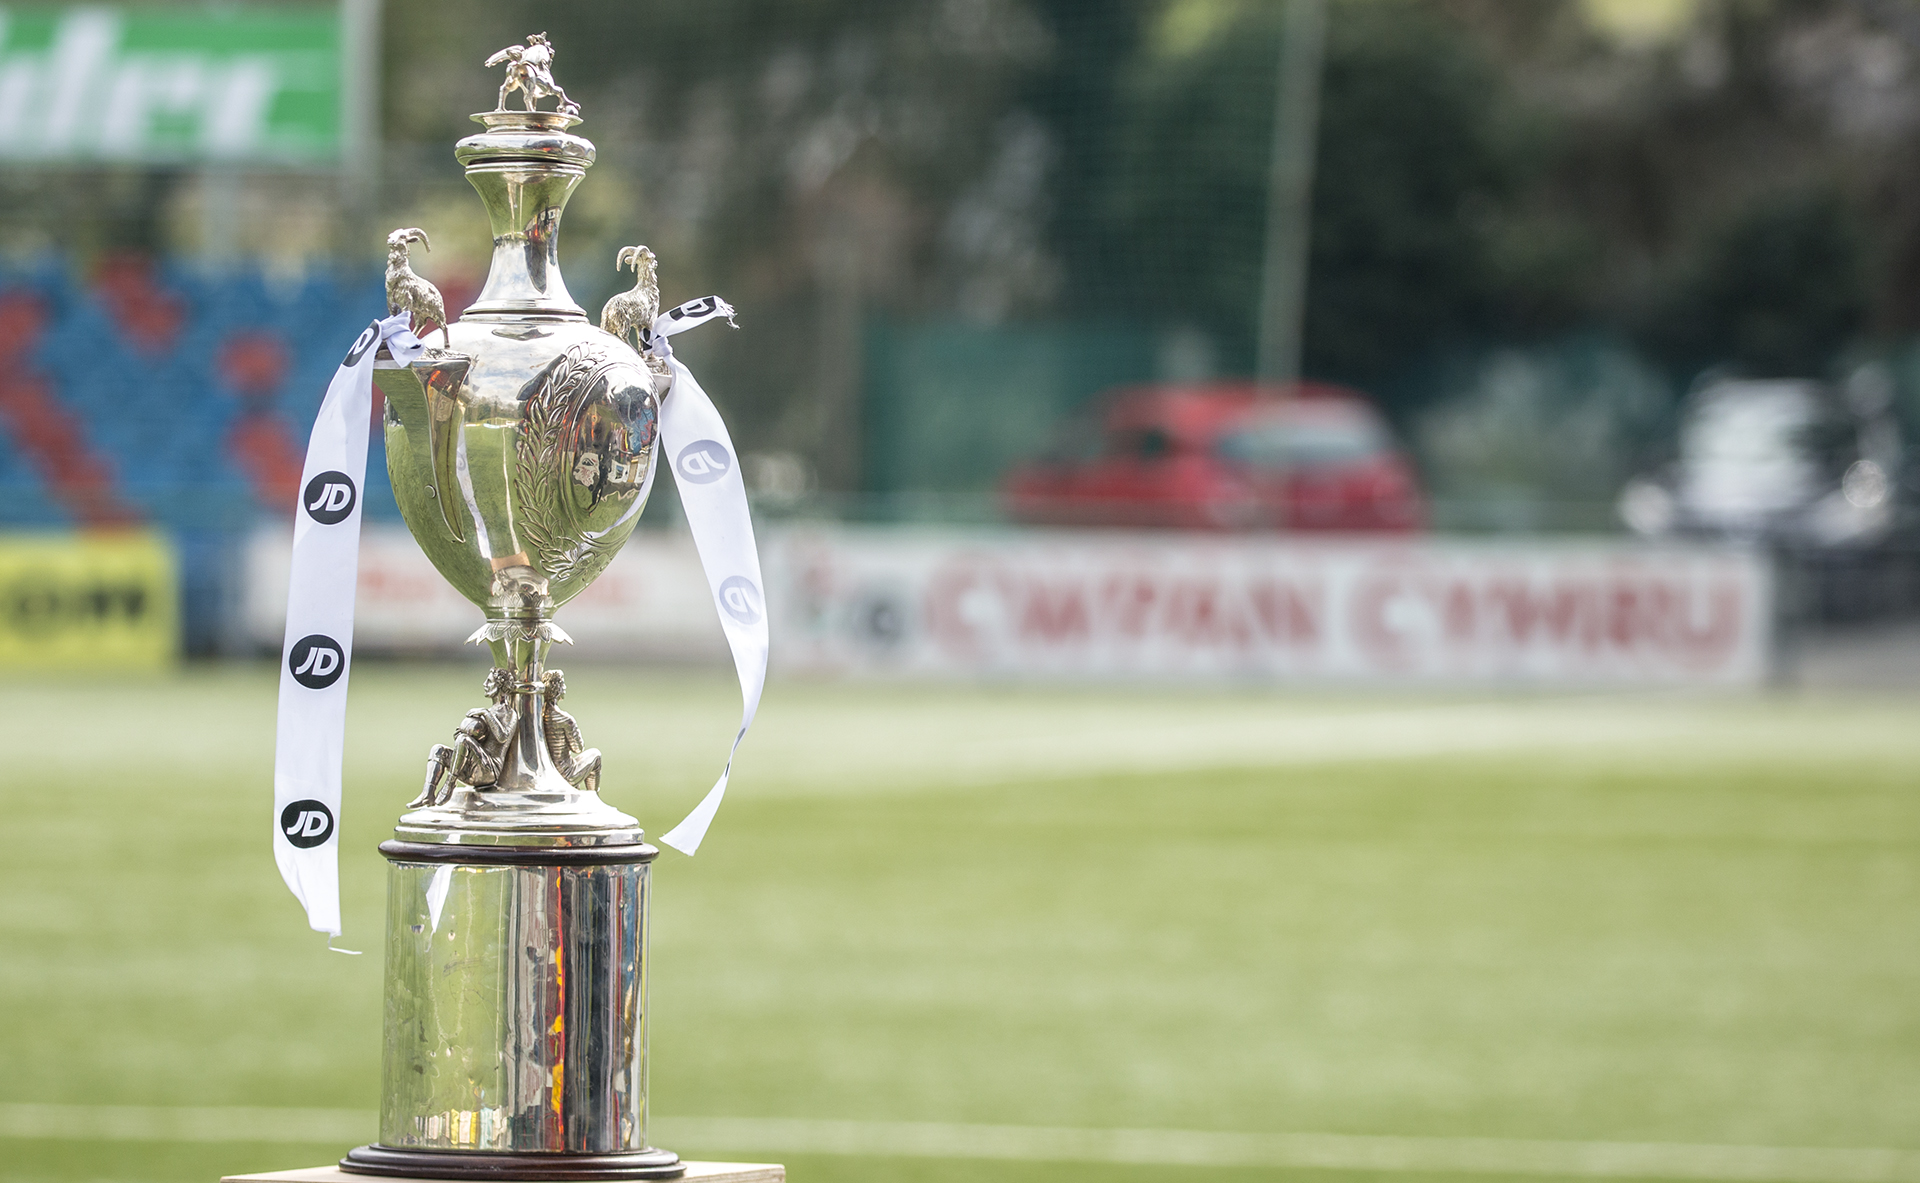 The JD Welsh Cup